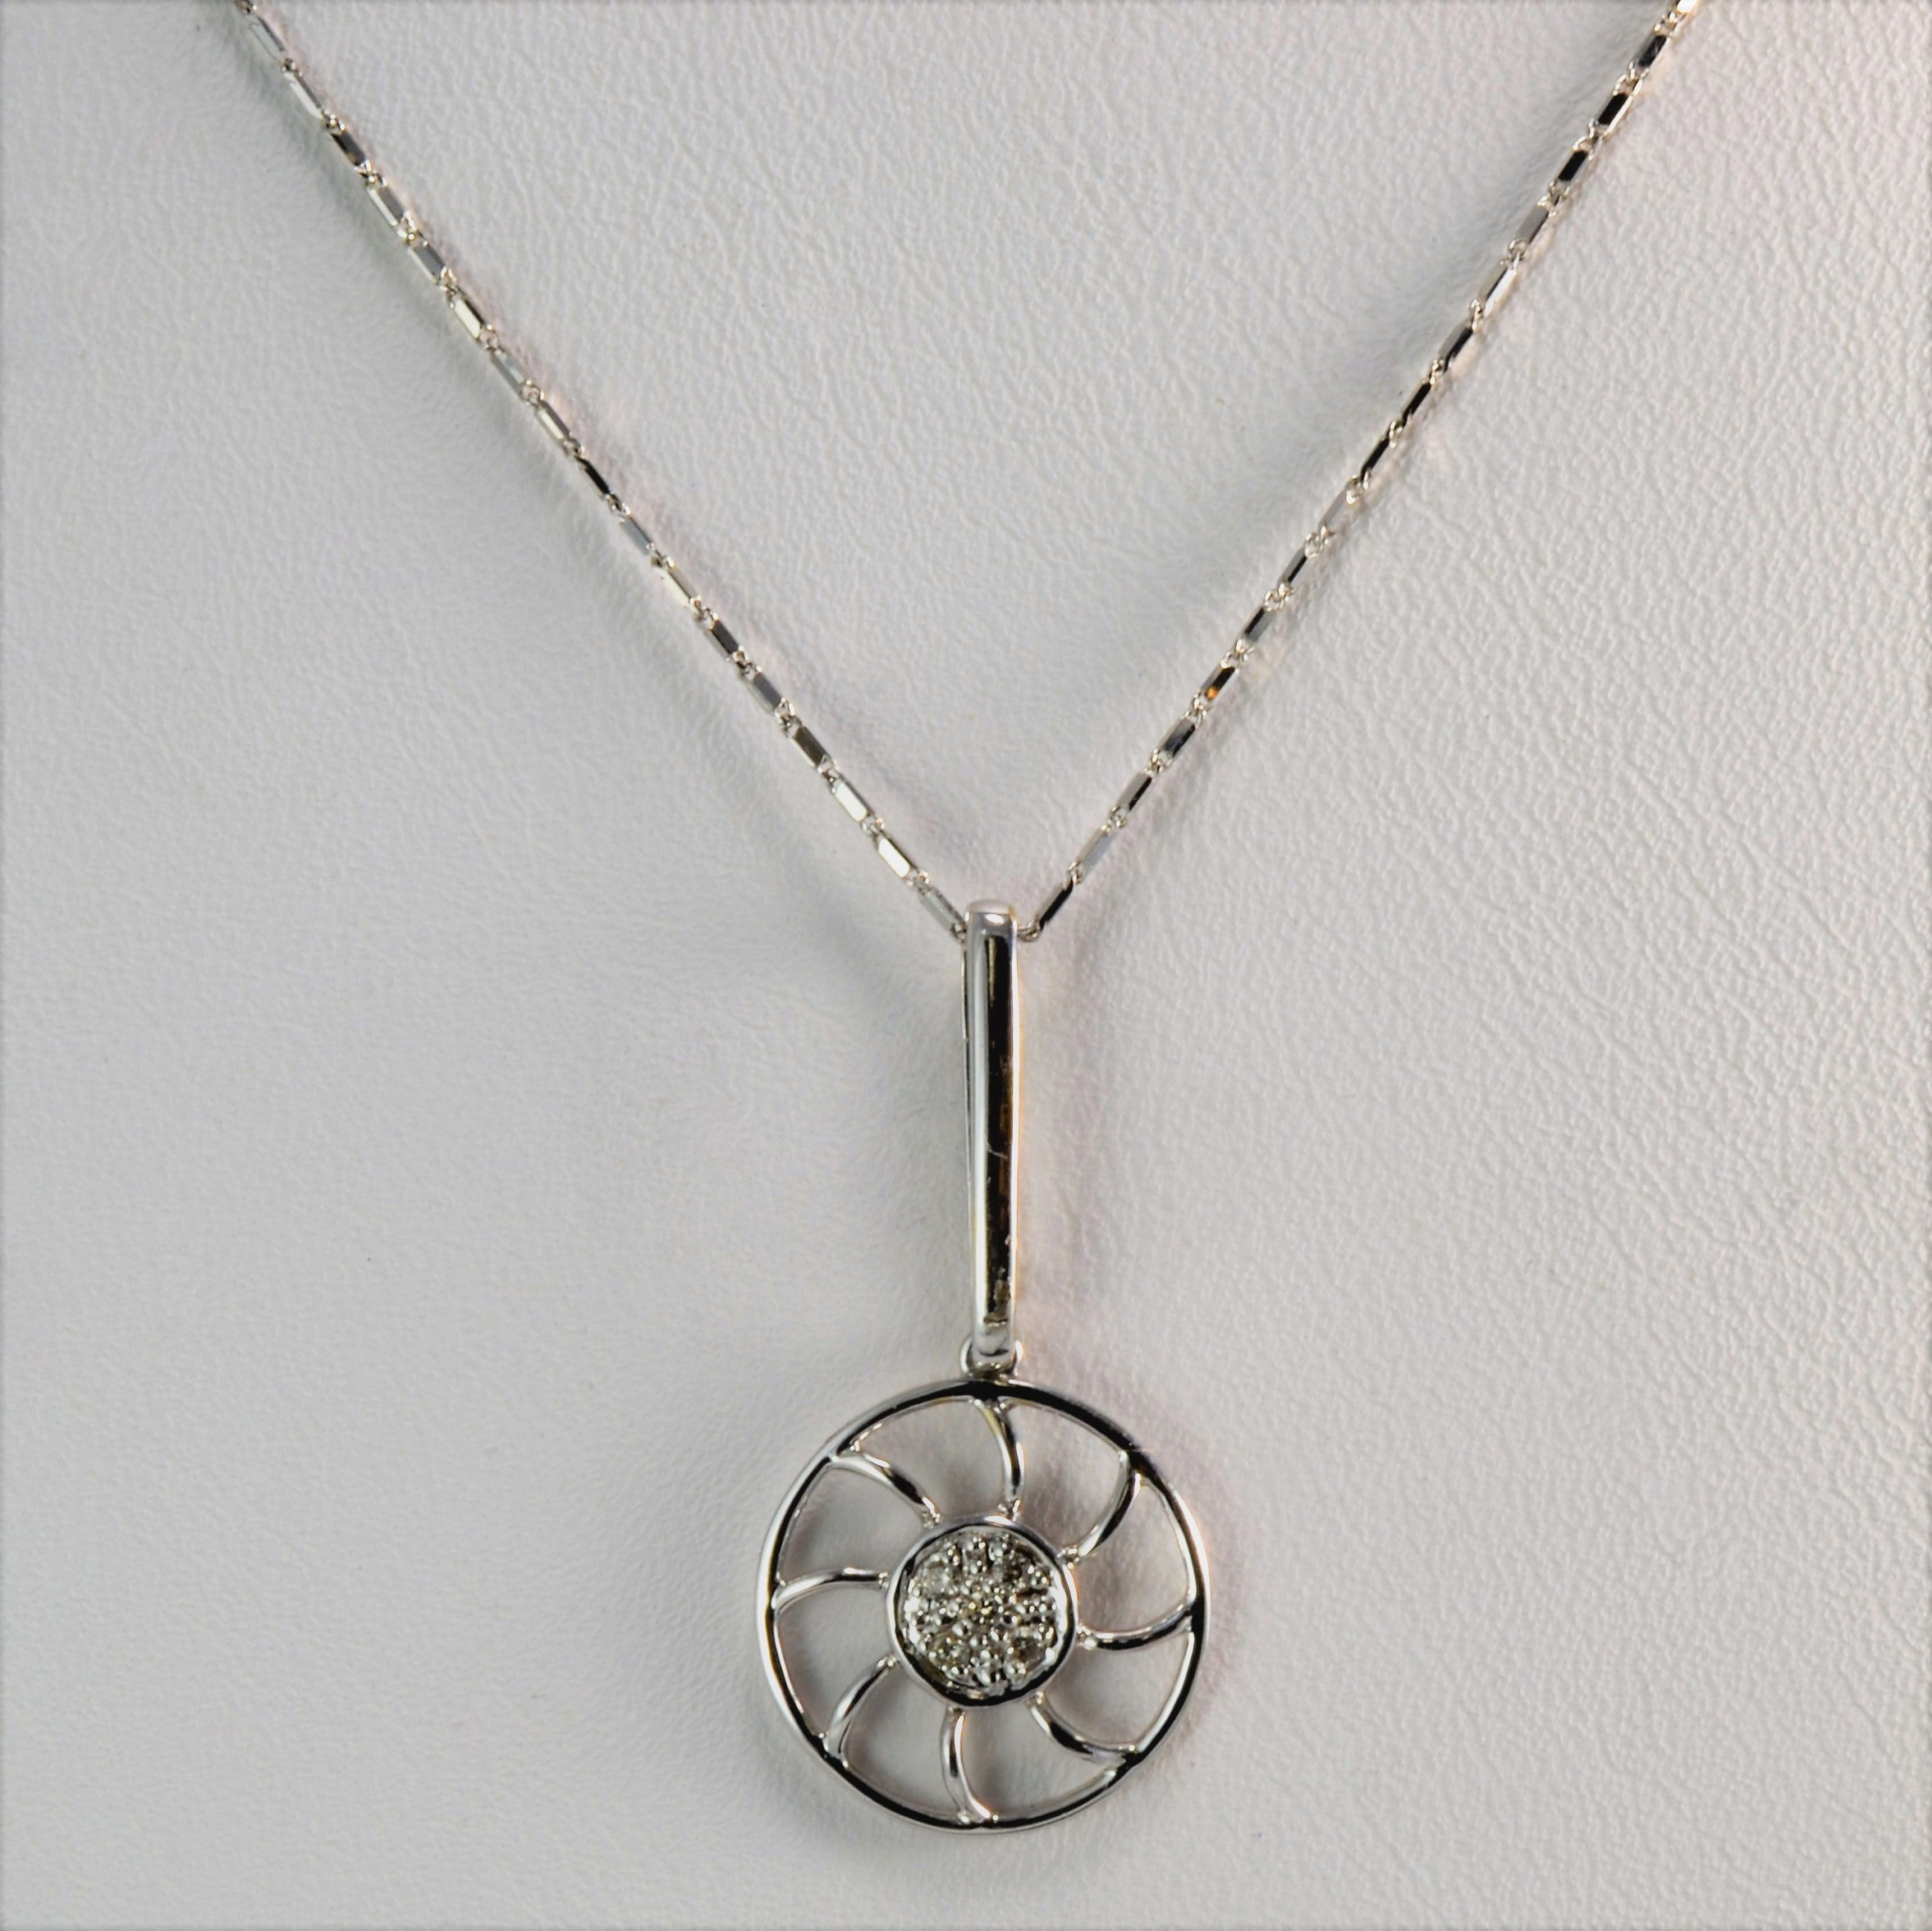 Abstract Diamond Sun Necklace | 18"